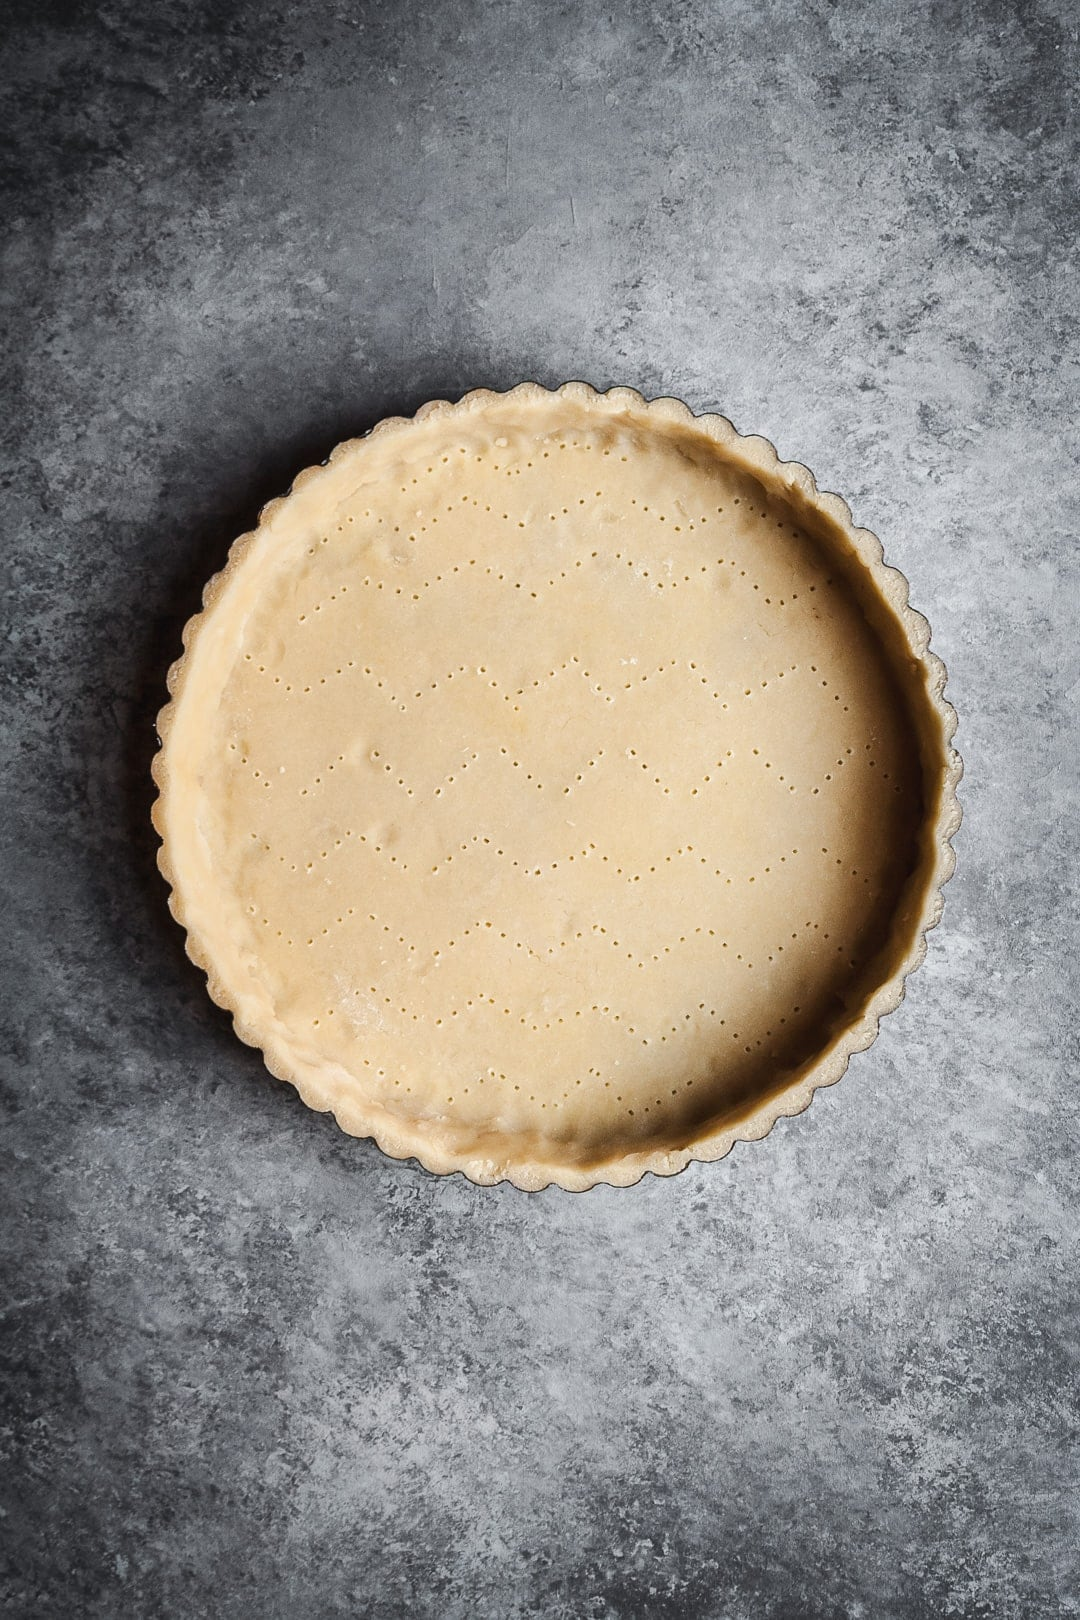 Unbaked tart shell on a grey background